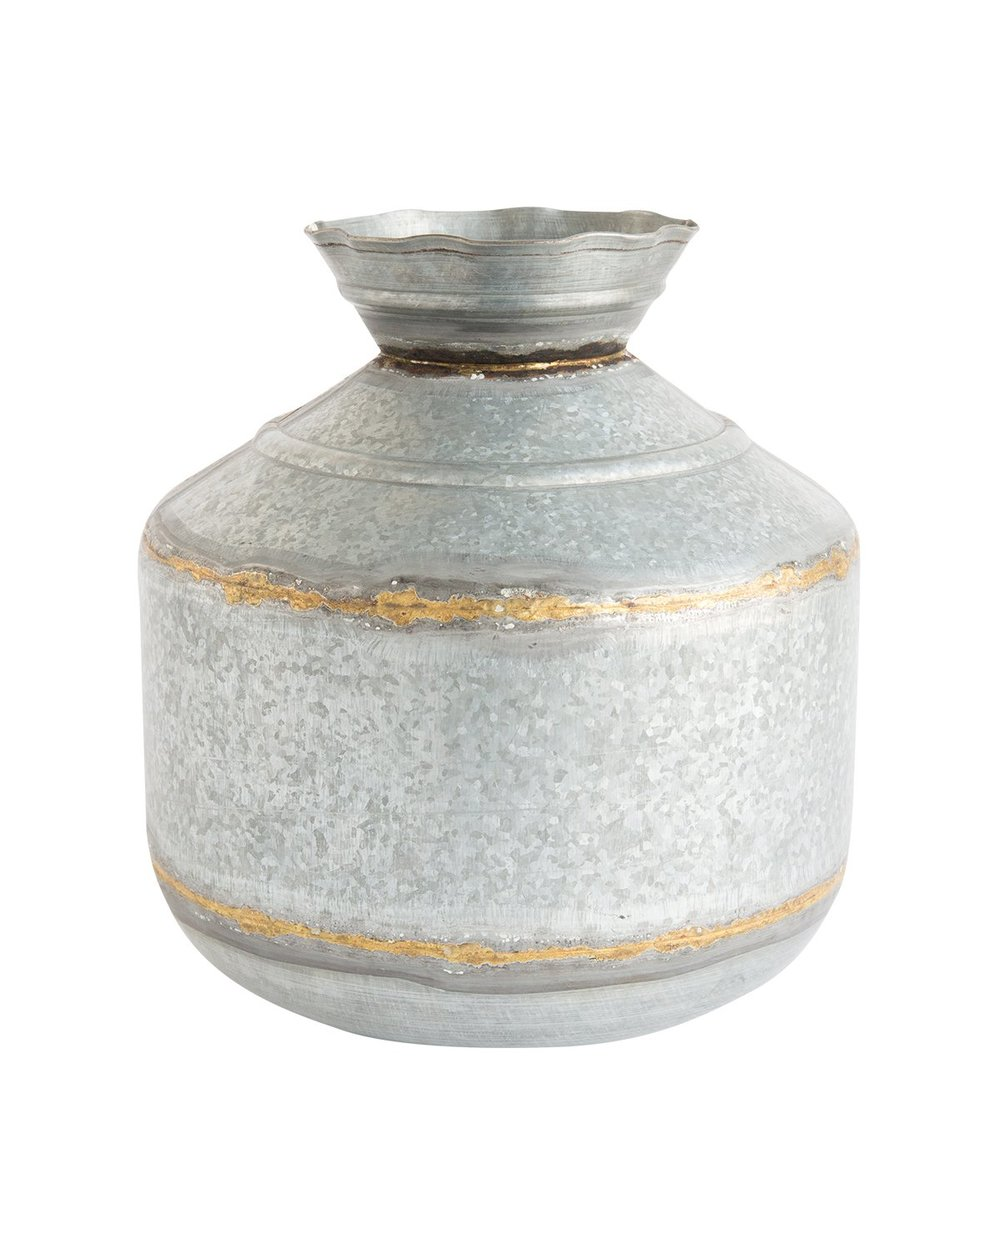 Galvanized_Metal_Vase_1 2.jpg